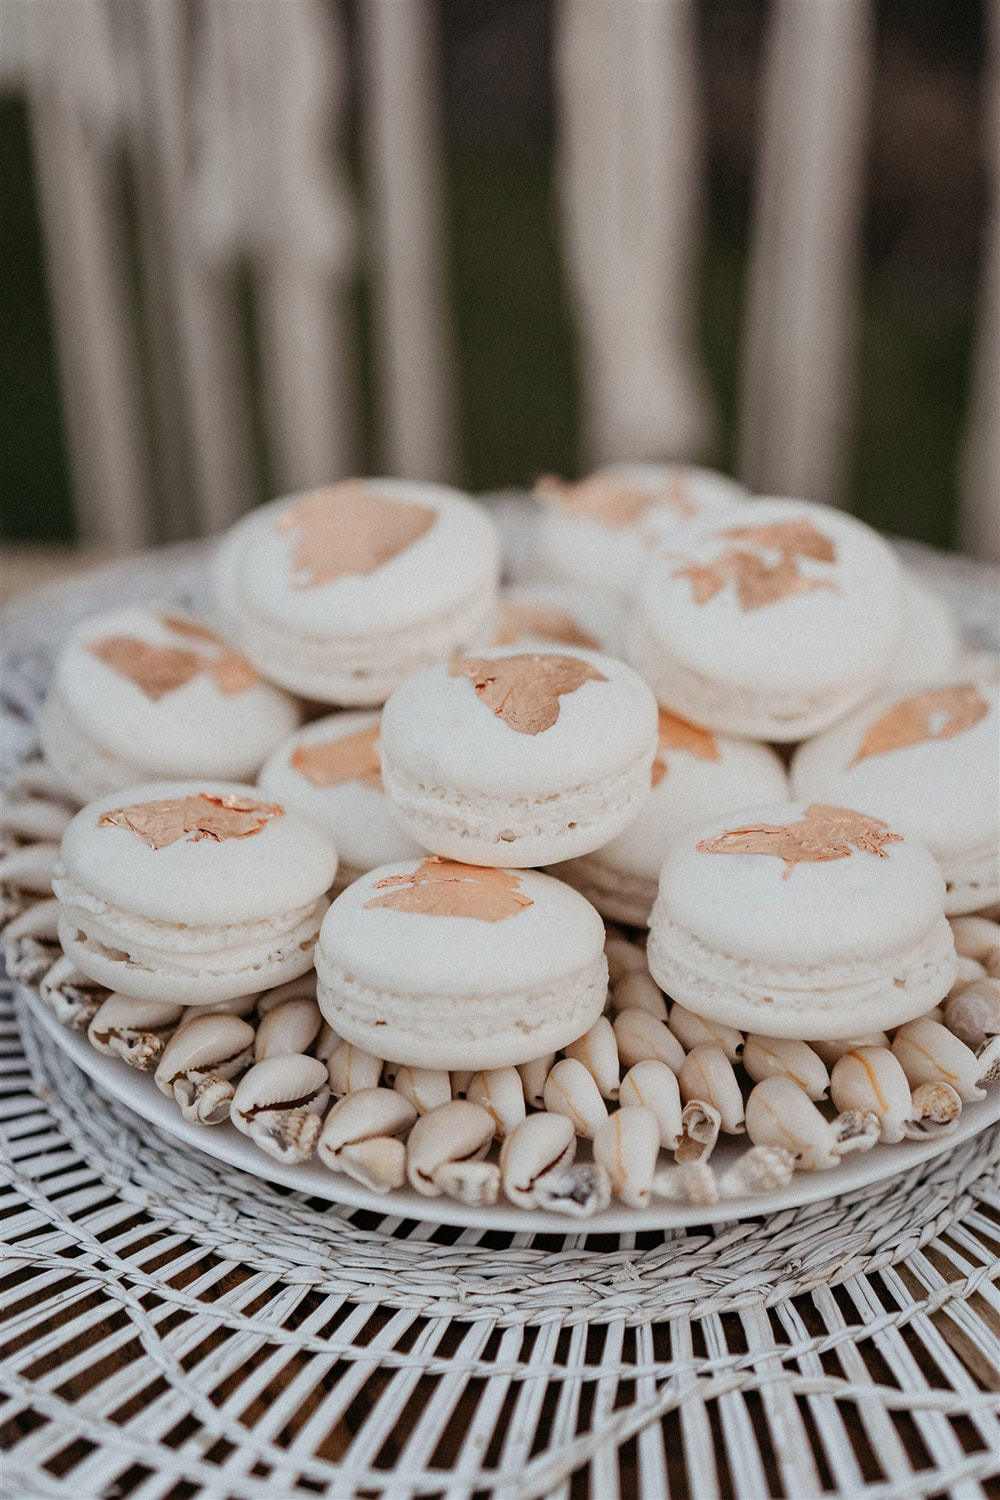 Outdoor Festival Bohemian Wedding Inspiration   A stack of white macarons topped with gold leaf for a bohemian wedding dessert table.   Photography: Shae Estella Photo